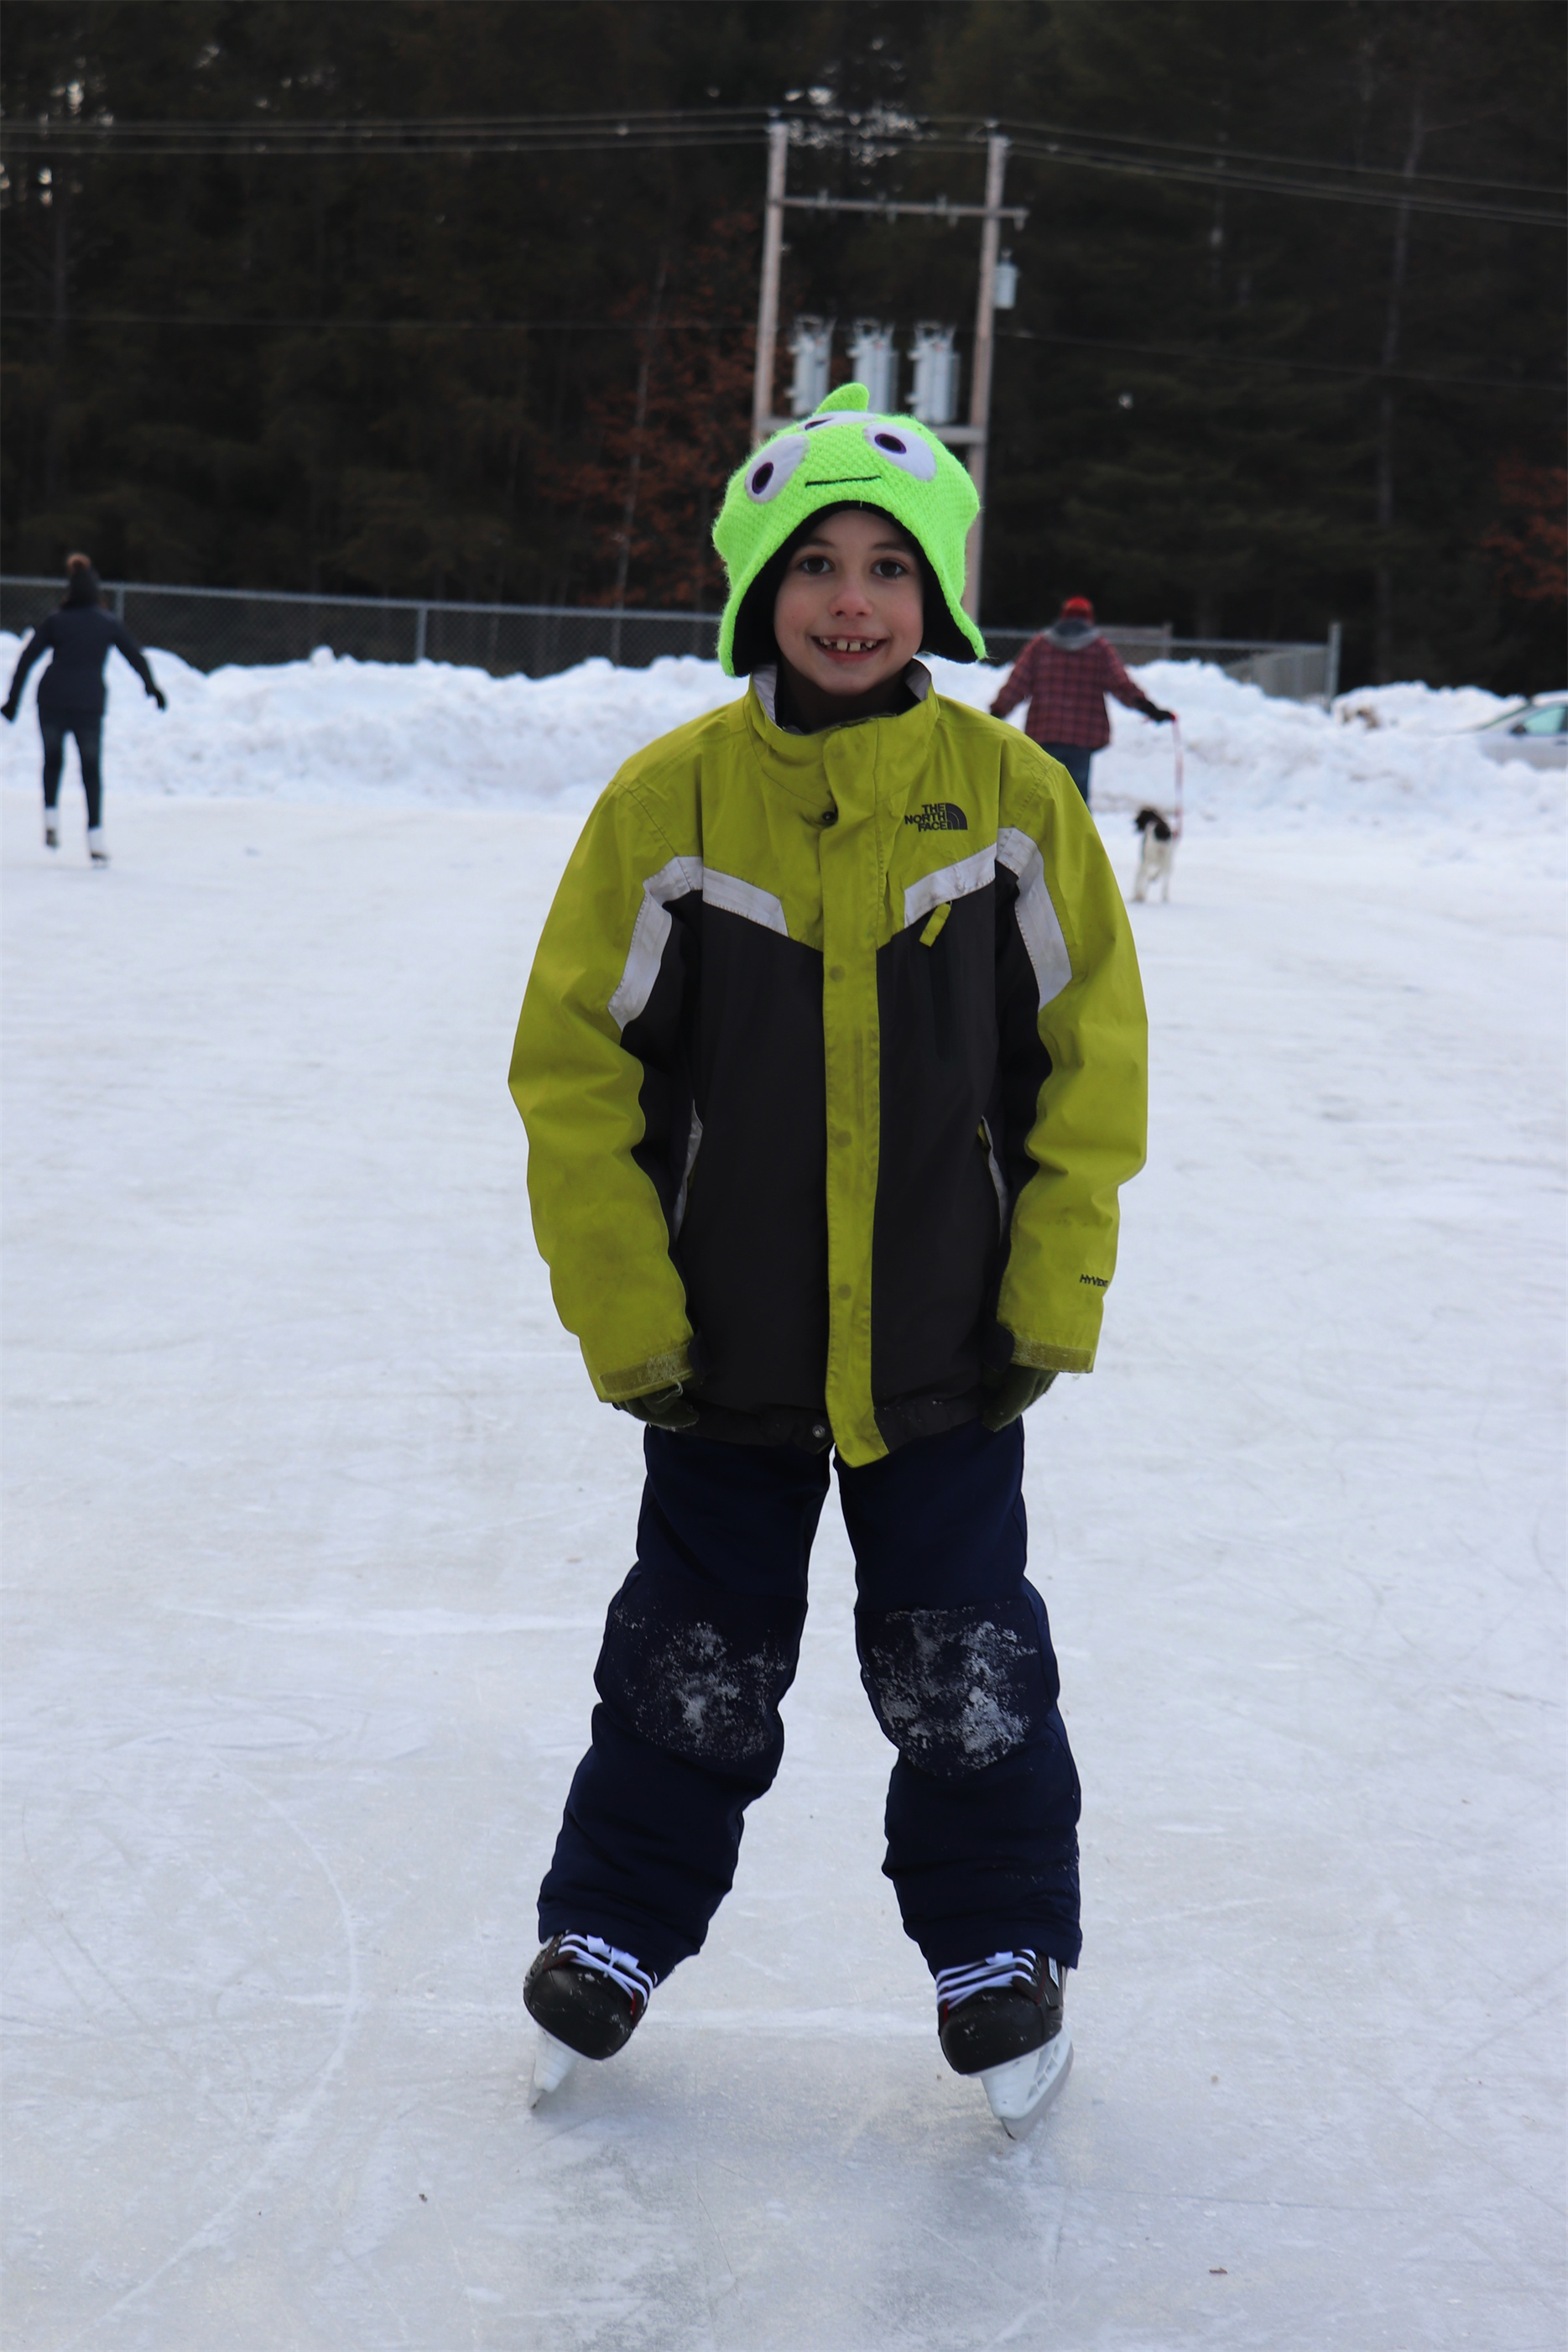 Ice skating in Woodruff is perfect winter fun. Kim Johnson photo